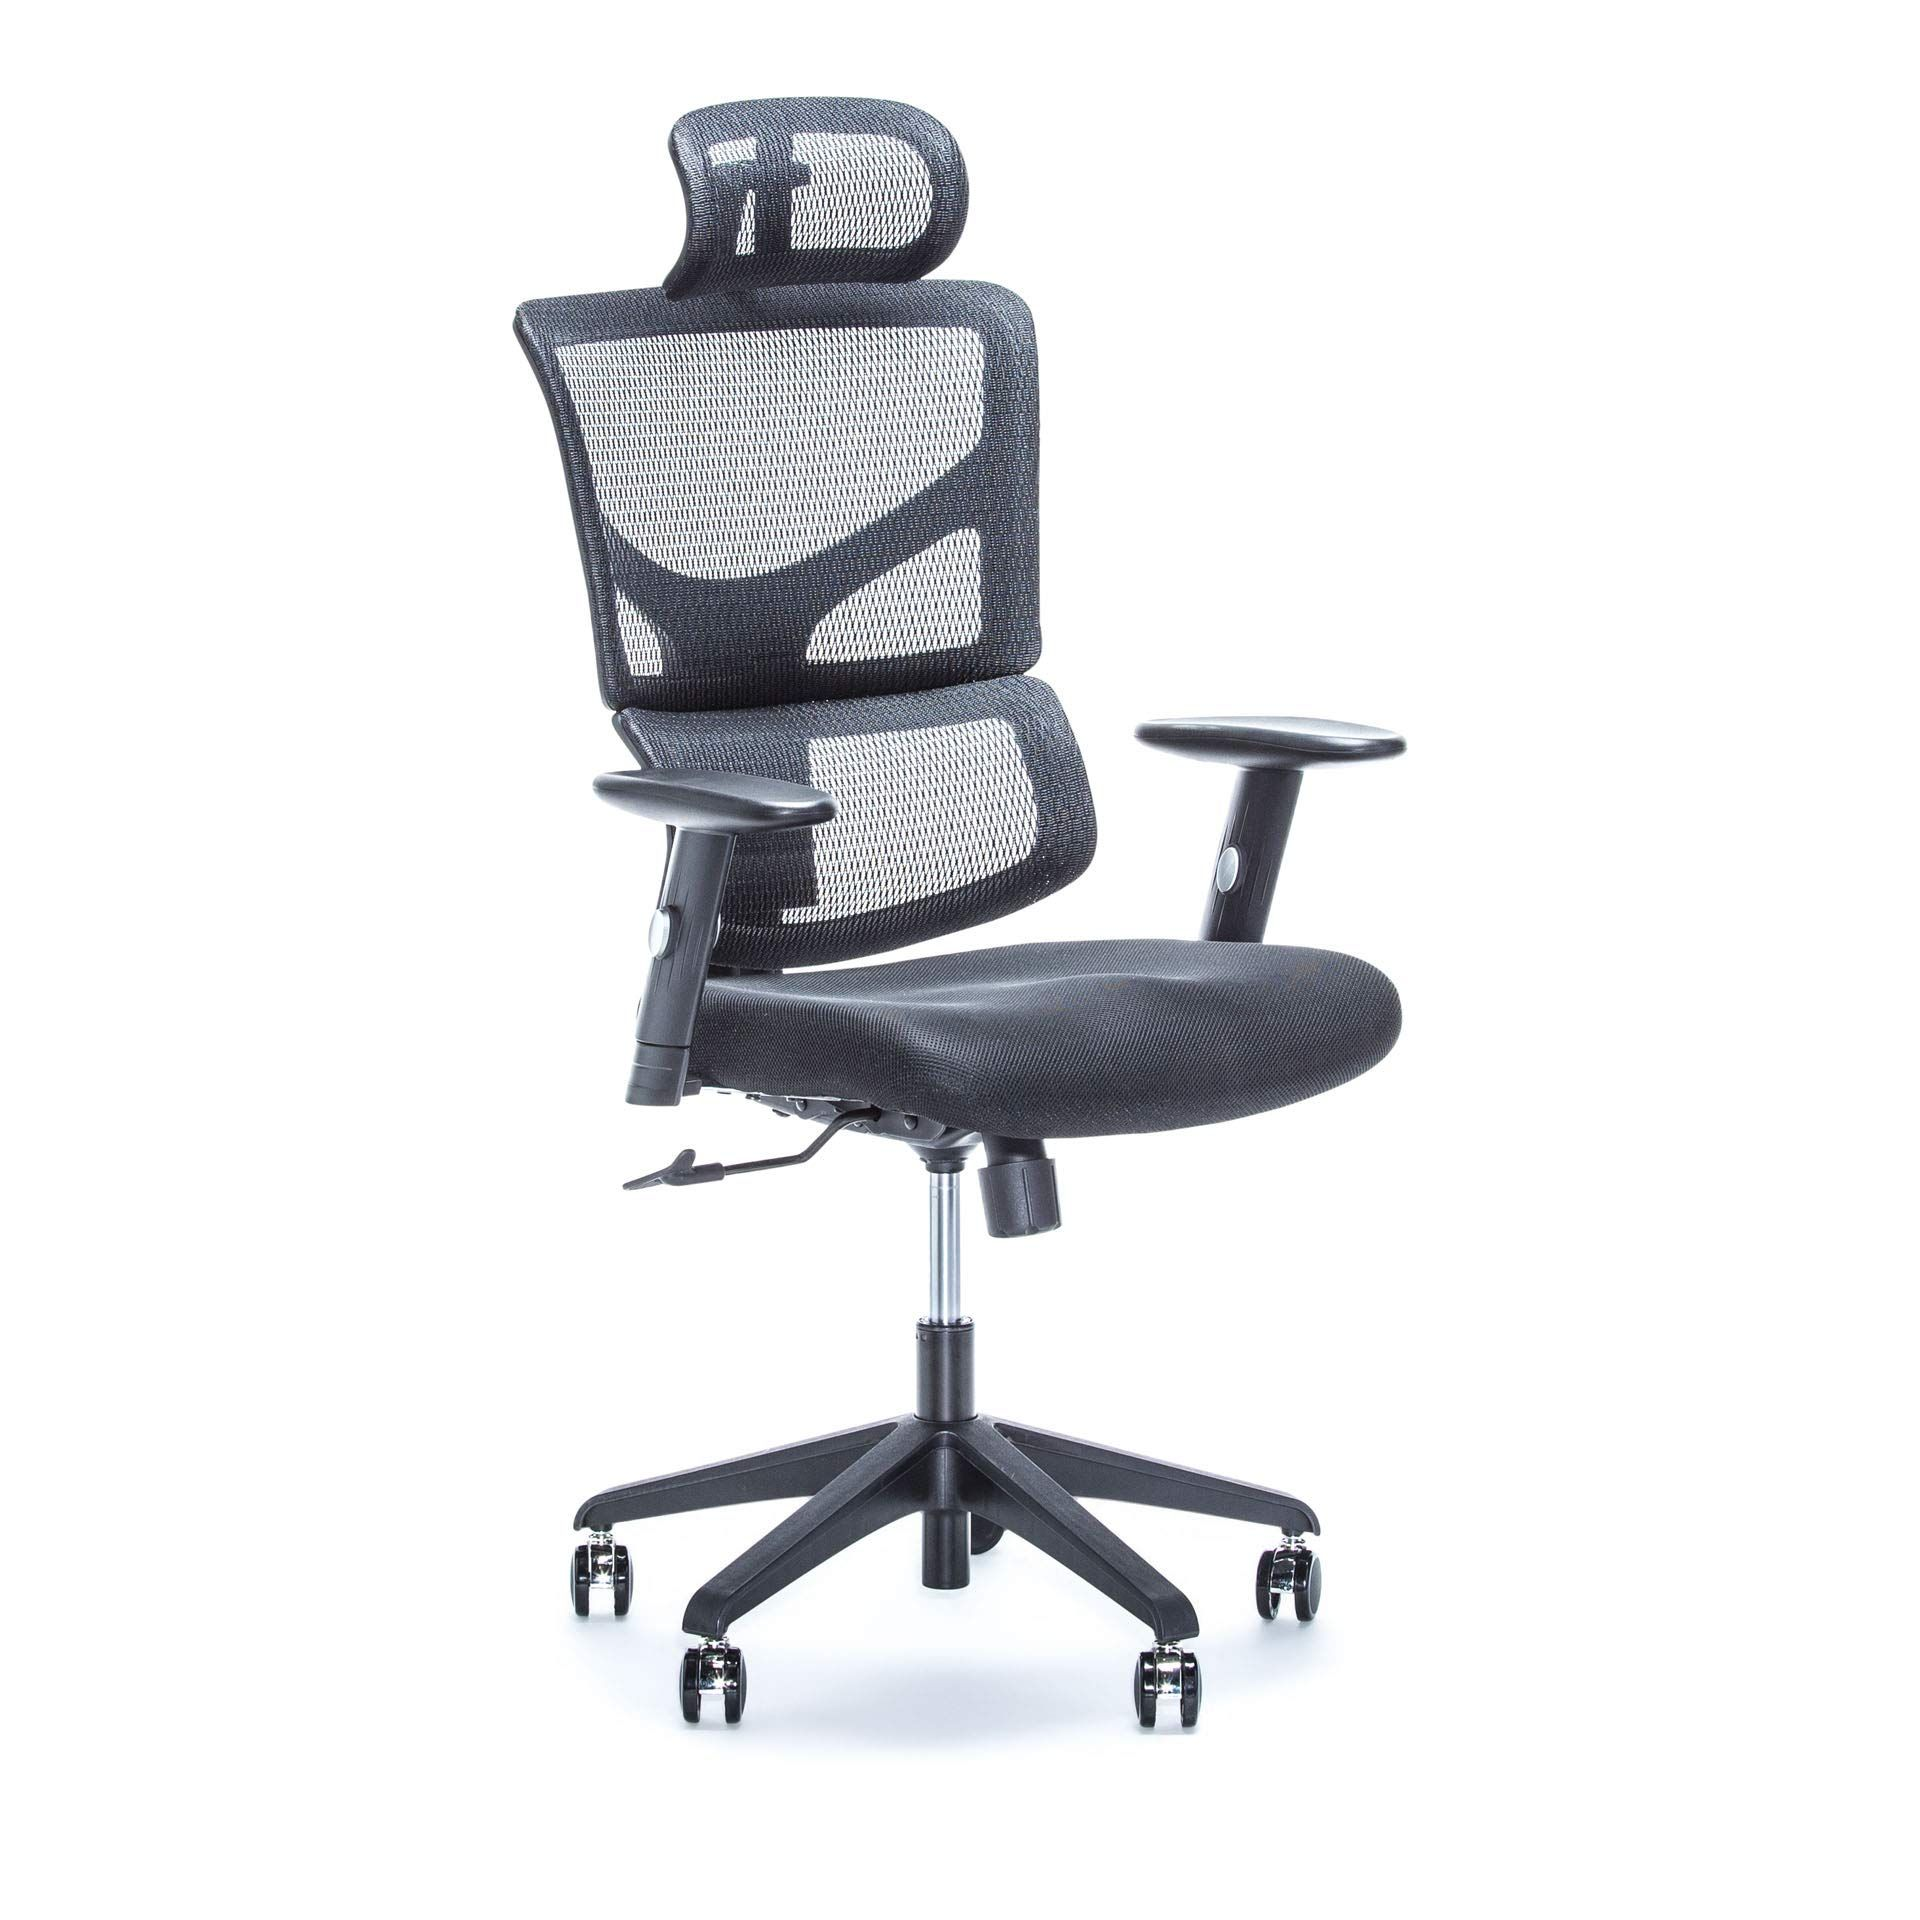 X Chair X1 Black Ergonomic Adjustable Office Chair With Headrest And Lumbar Support Heavy Duty Rolling Wheels Breat In 2020 Office Desk Chair Computer Chair Chair